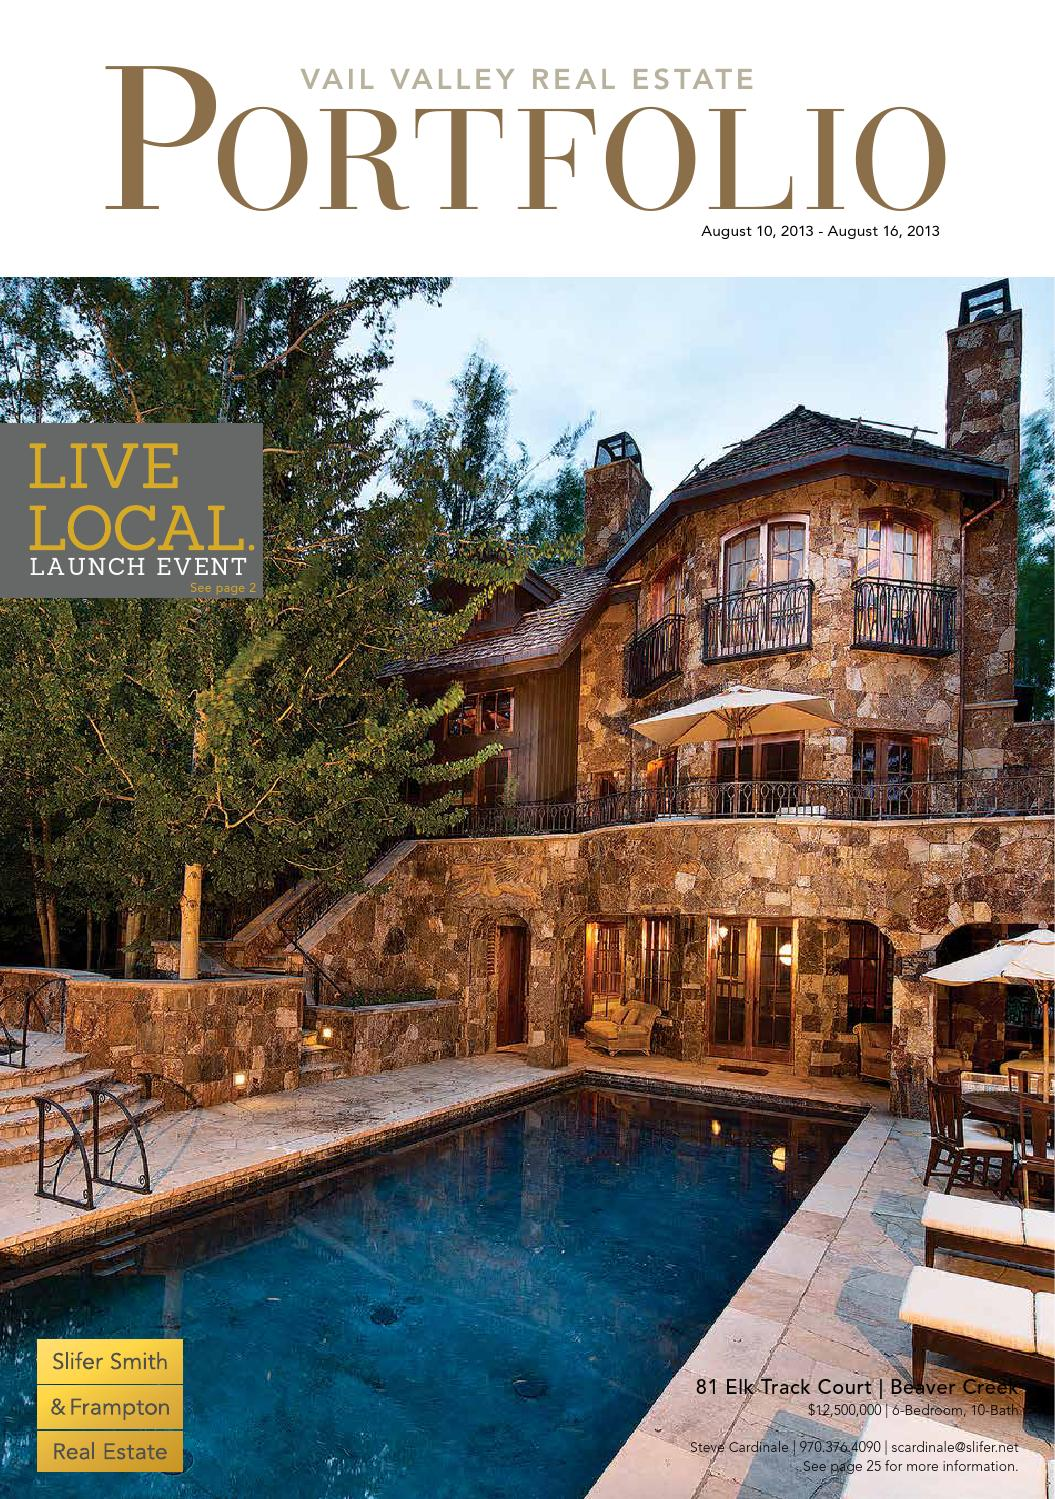 The Vail Valley Real Estate Portfolio by Slifer Smith & Frampton ...